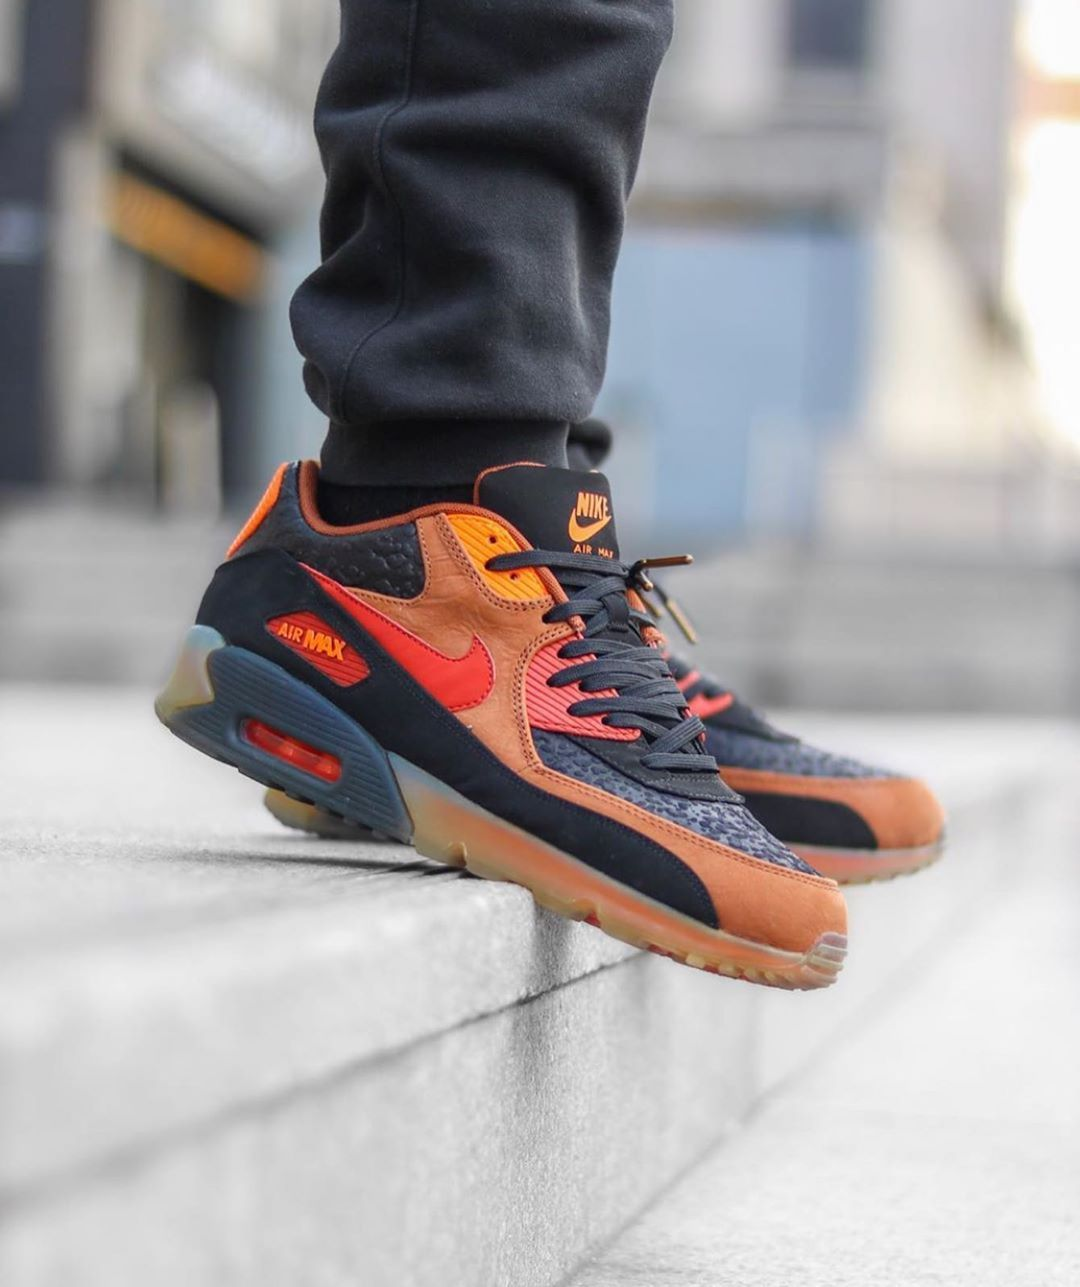 Nike Air Max 90 X Ice Halloween How Do You Think These Compare To This Year S Airmaxkicks Nike Air Max Nike Air Air Max Sneakers